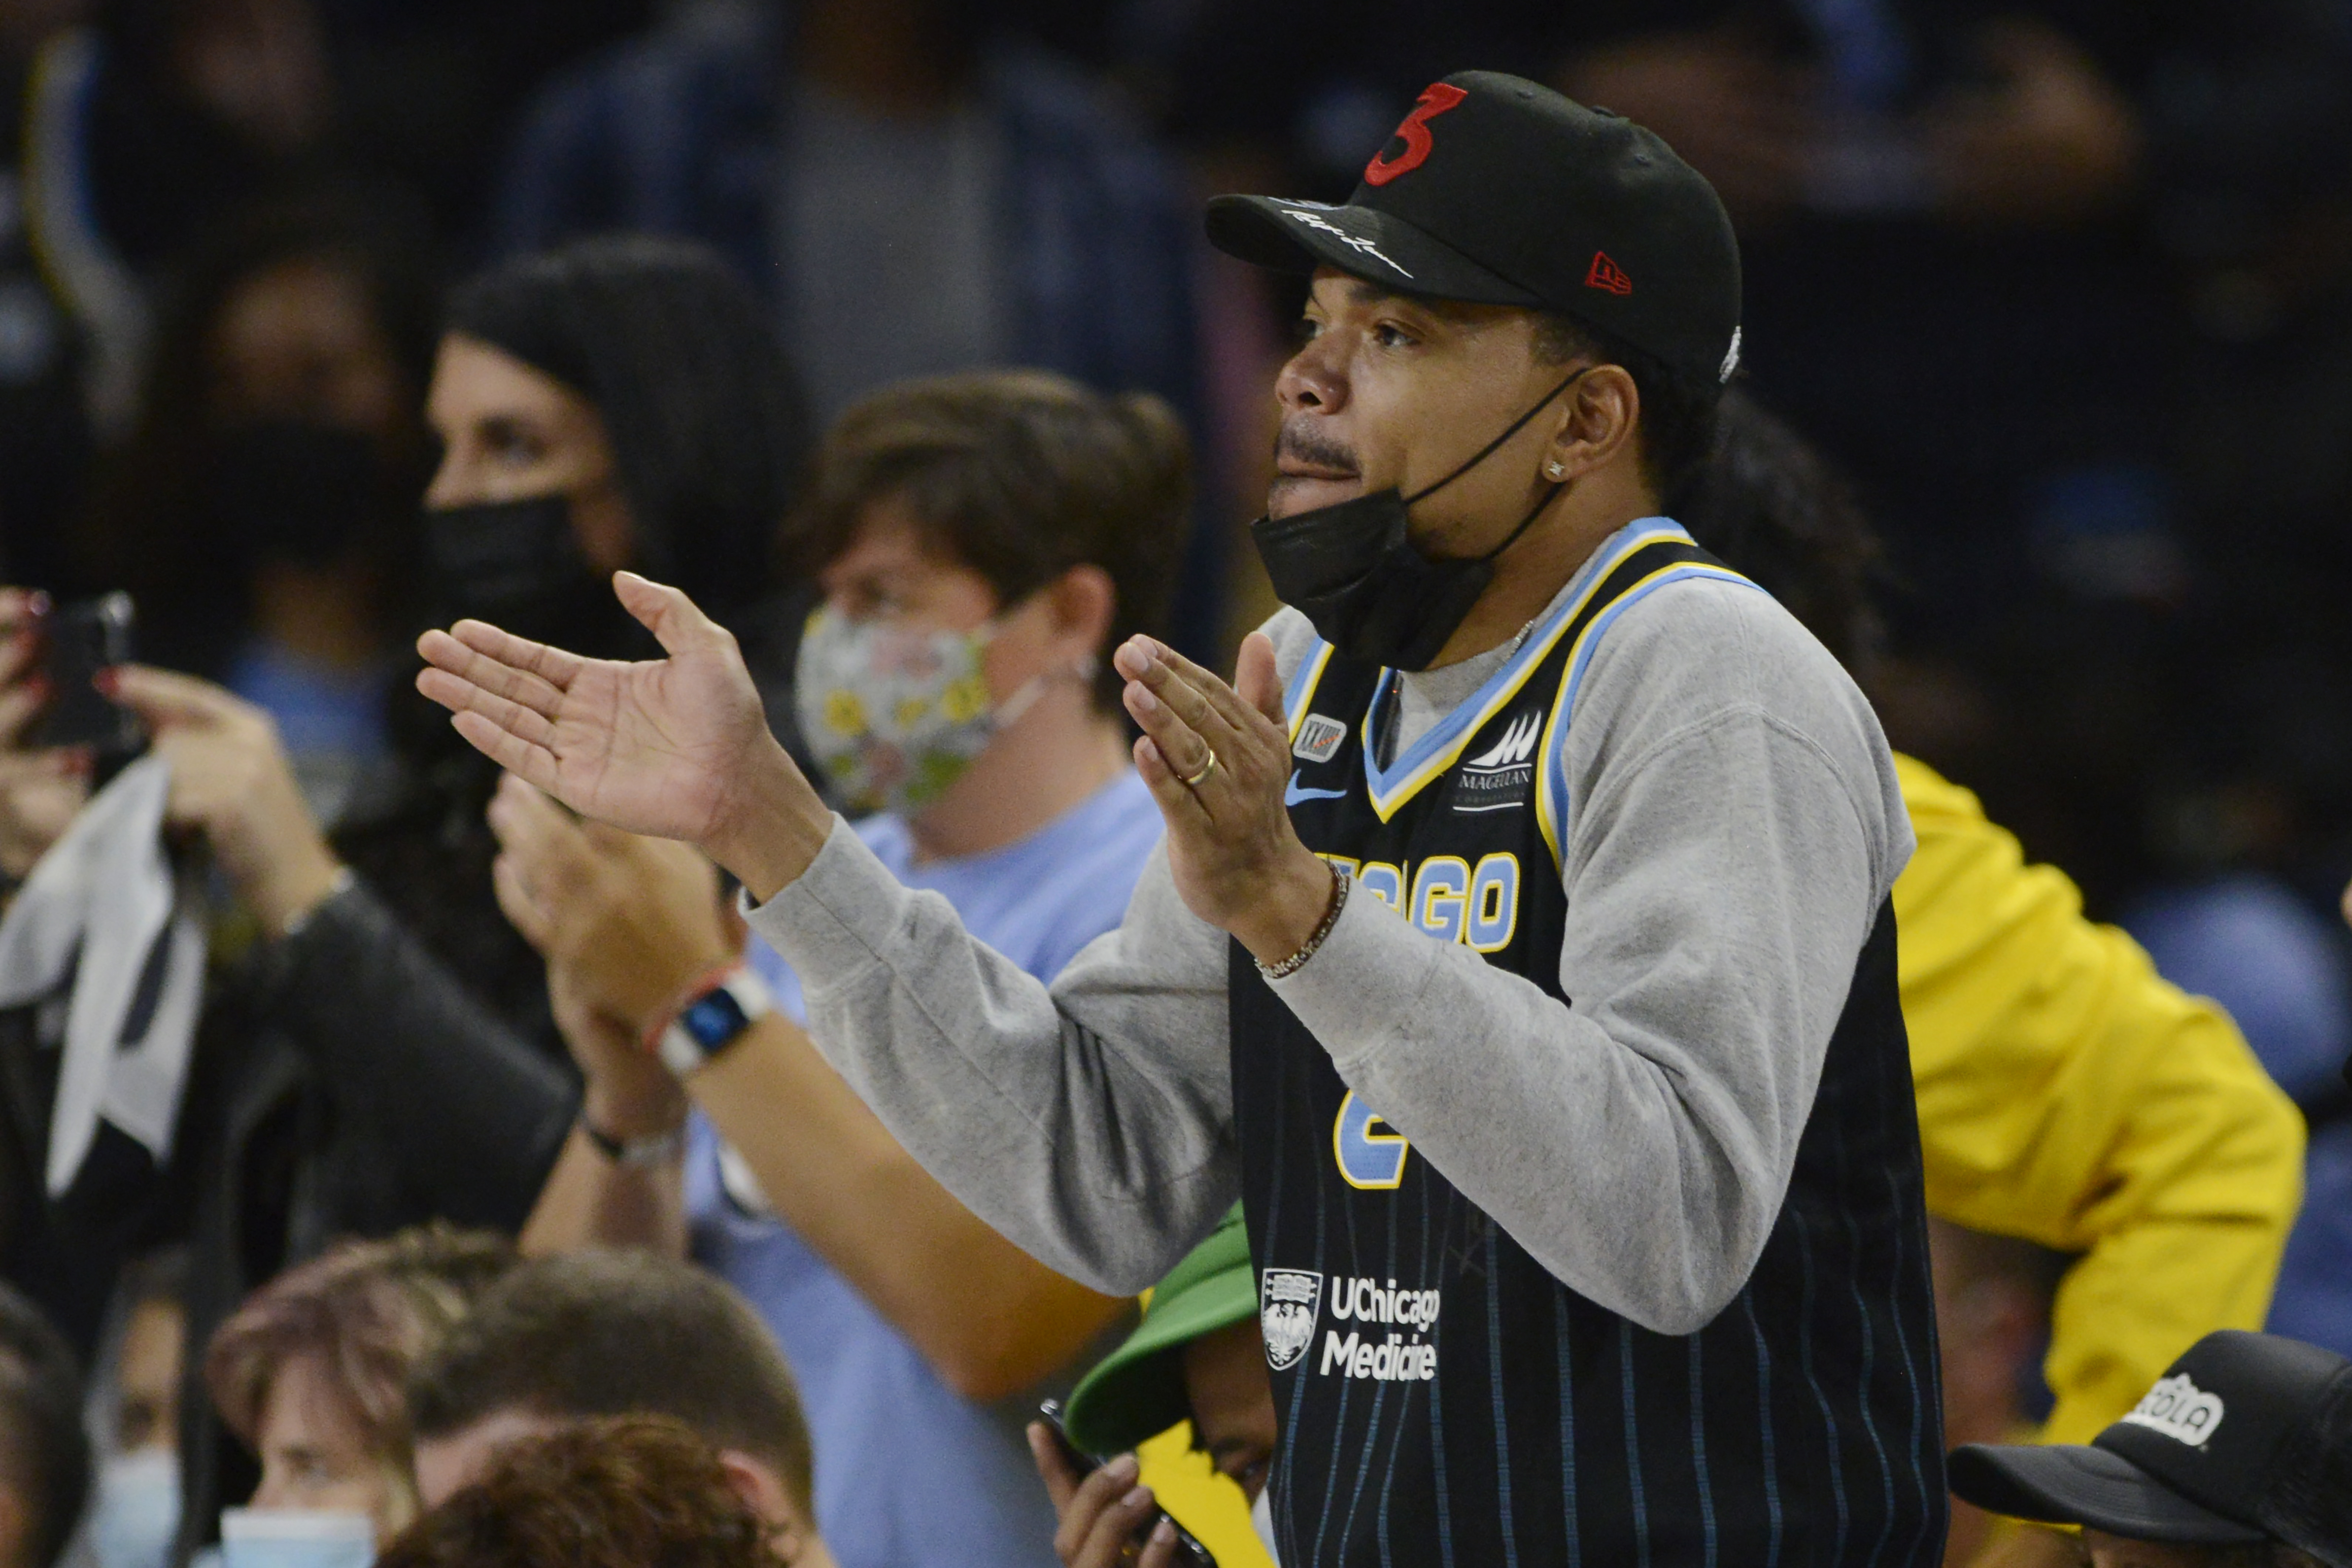 Chance the Rapper cheers during the final seconds of Game 4 of the WNBA Finals at Wintrust Arena. The Sky beat the Mercury to capture the championship.